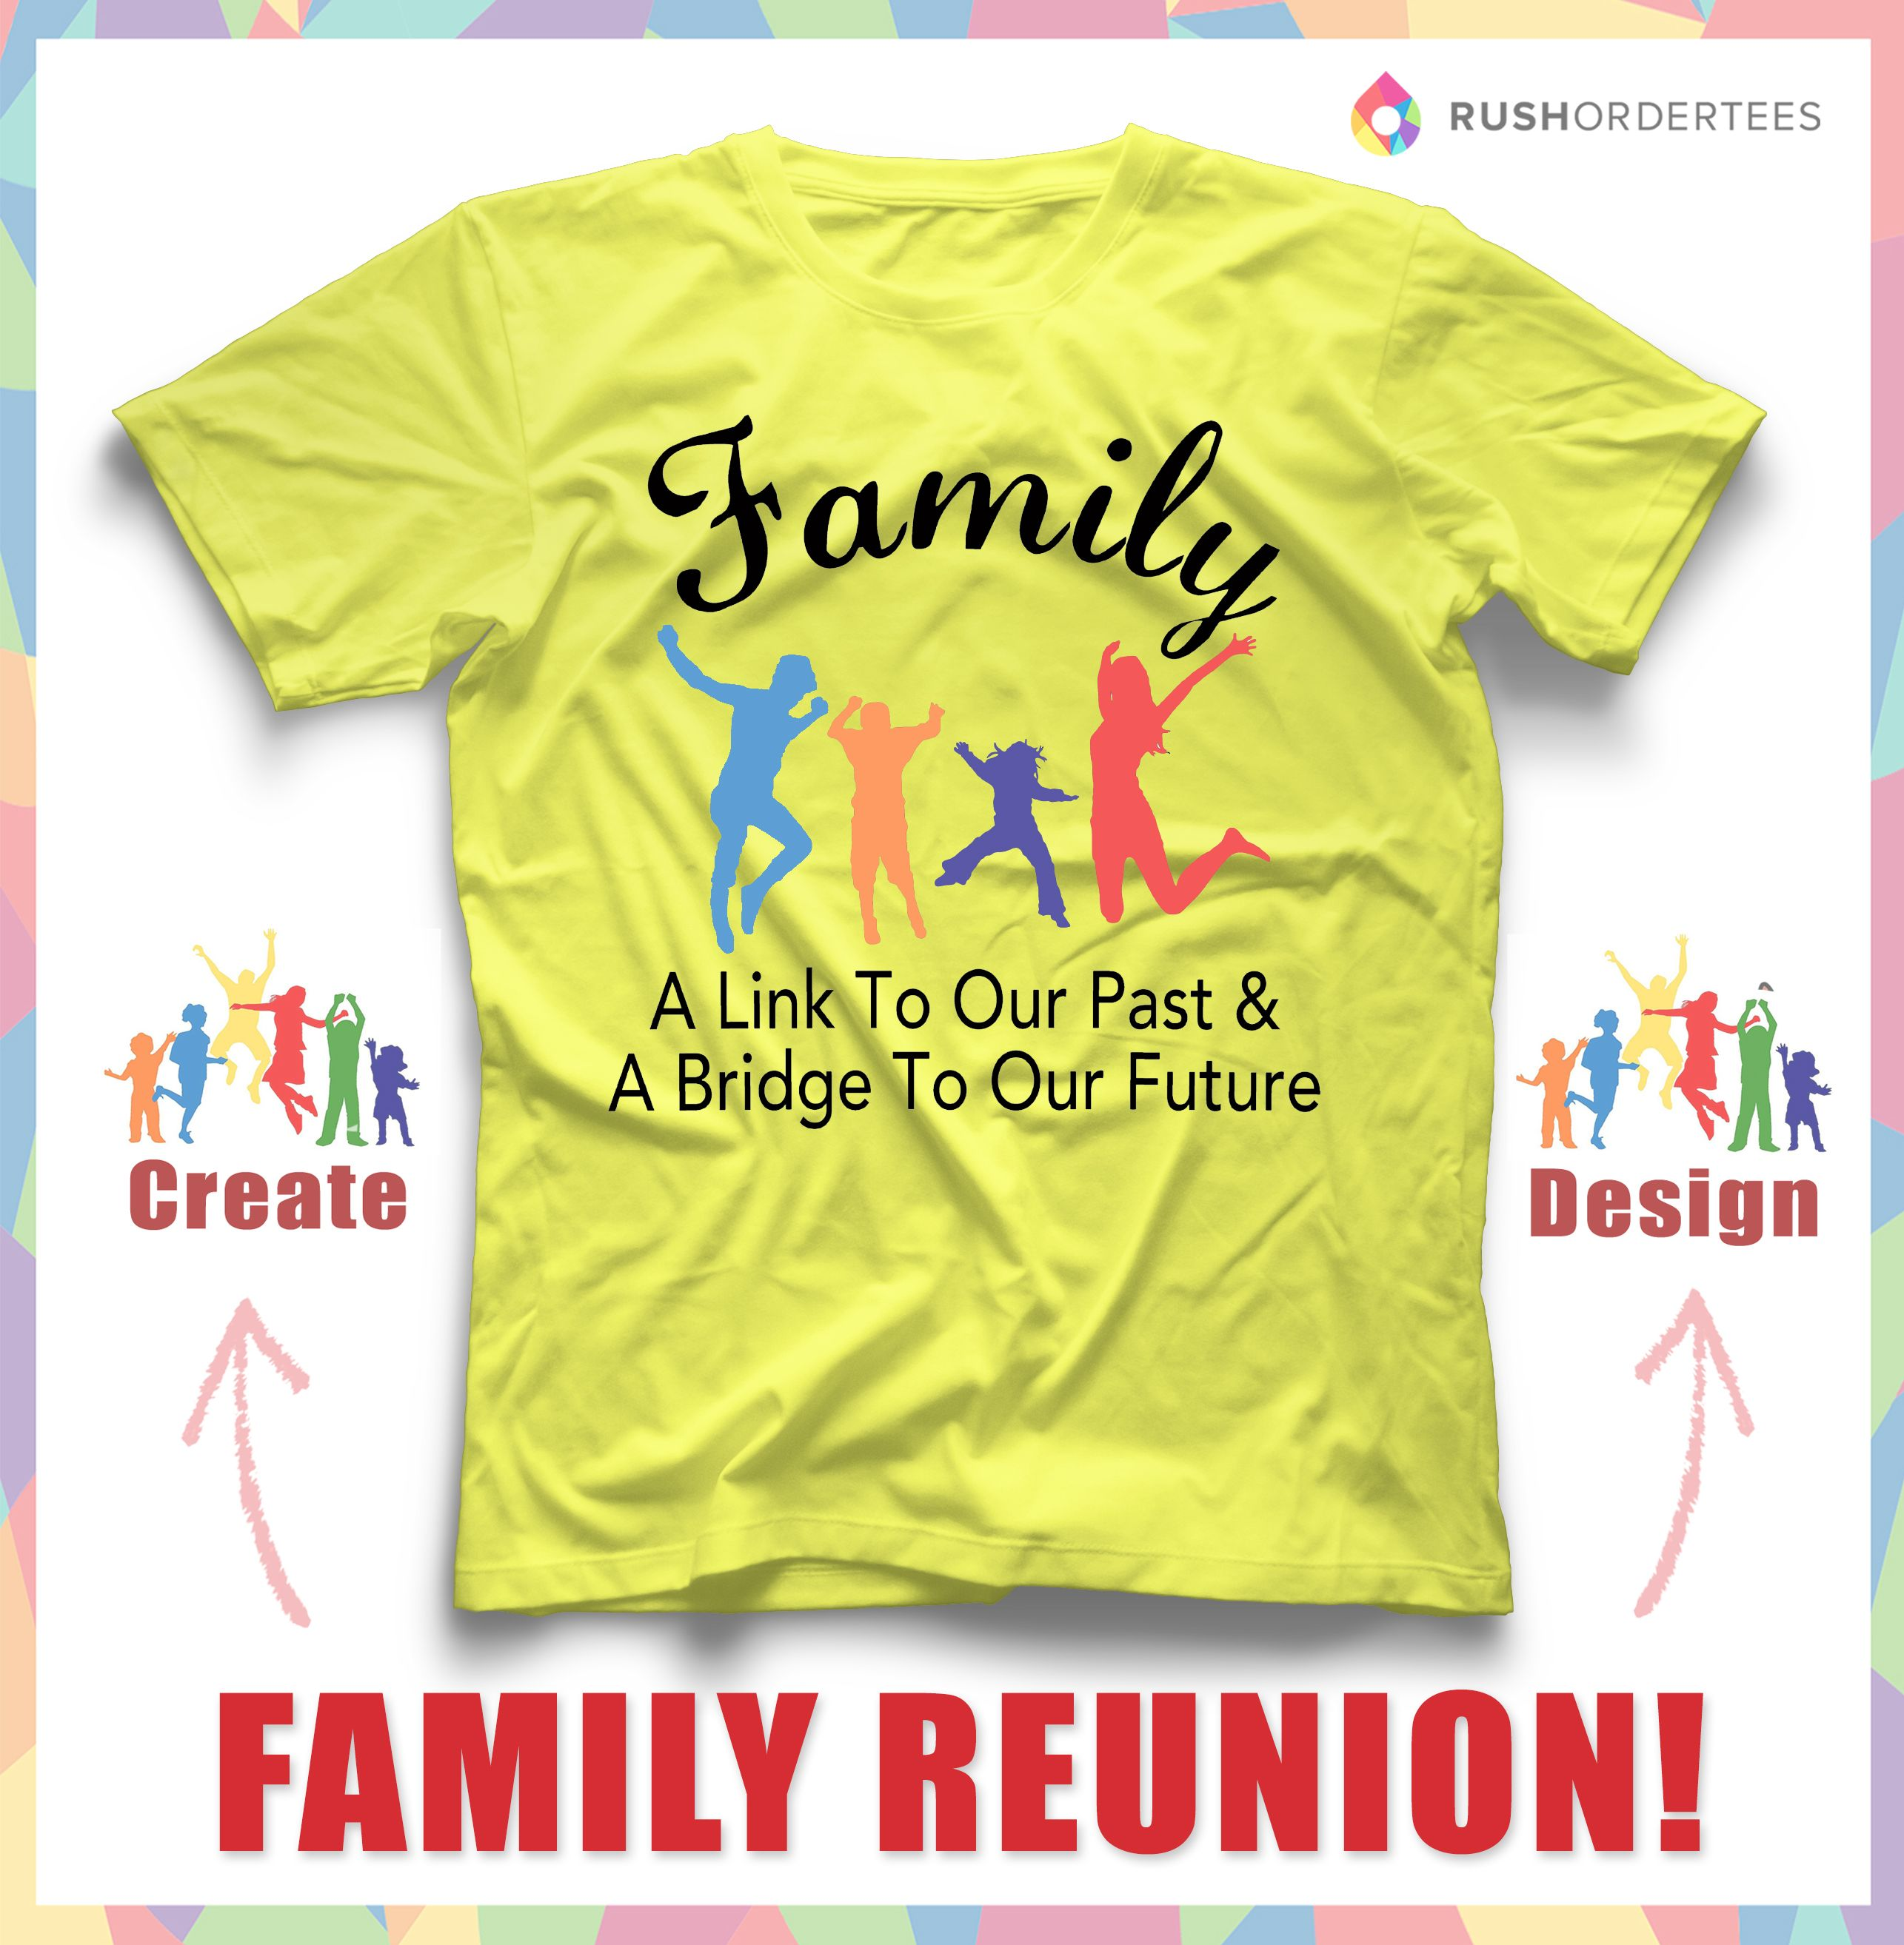 family reunion custom t shirt design idea create an awesome custom design for your